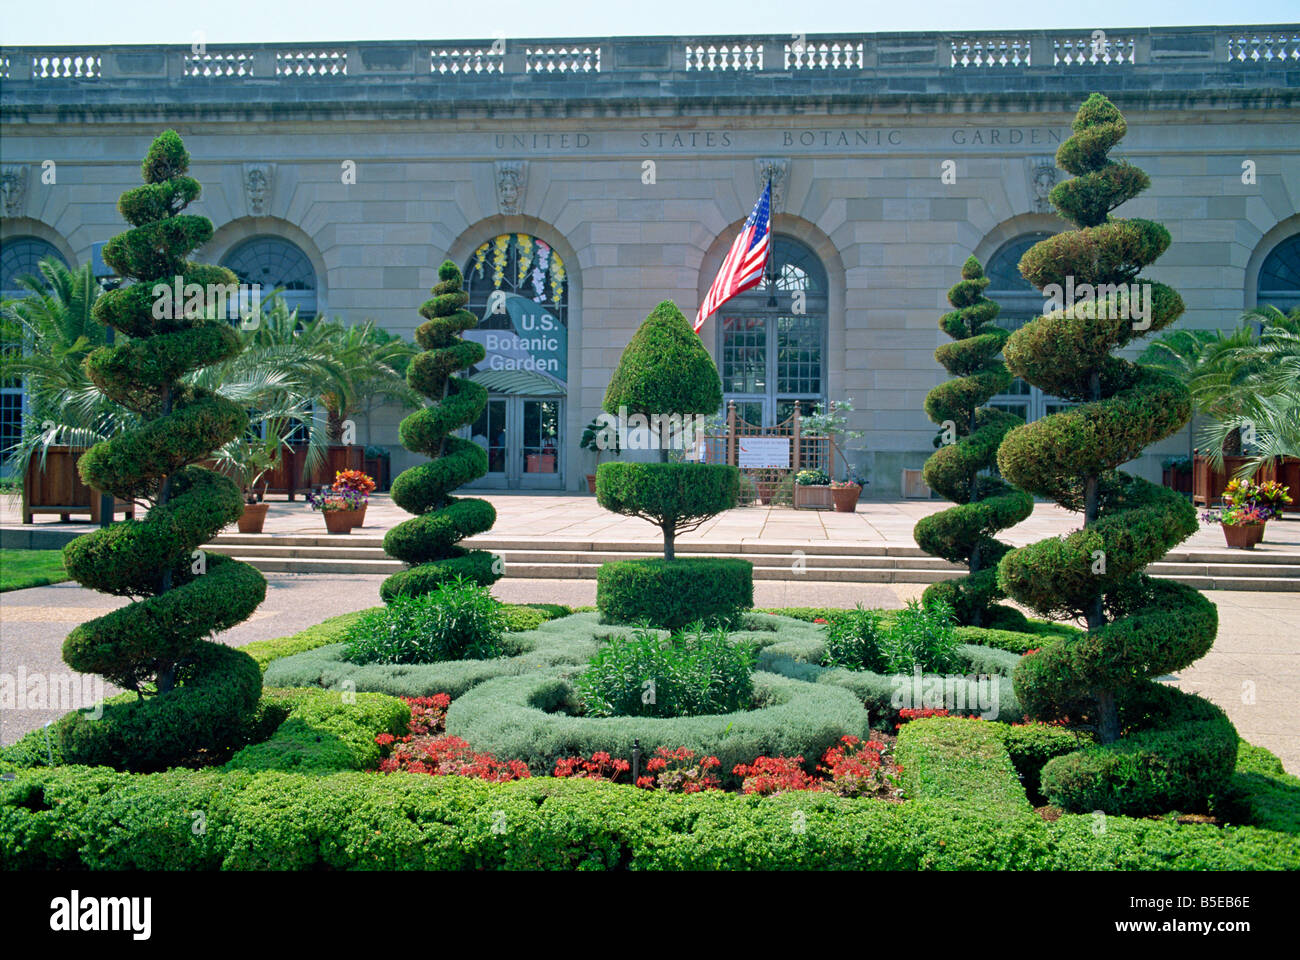 Topiary In The United States Botanic Gardens In Washington DC USA J Hodson